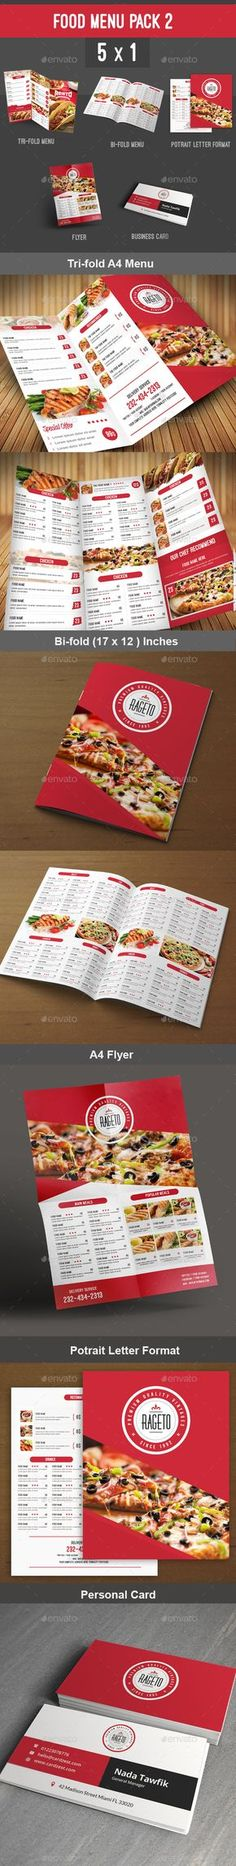 Restaurant Door Hanger  Food Menu Layer Photos And Hanger